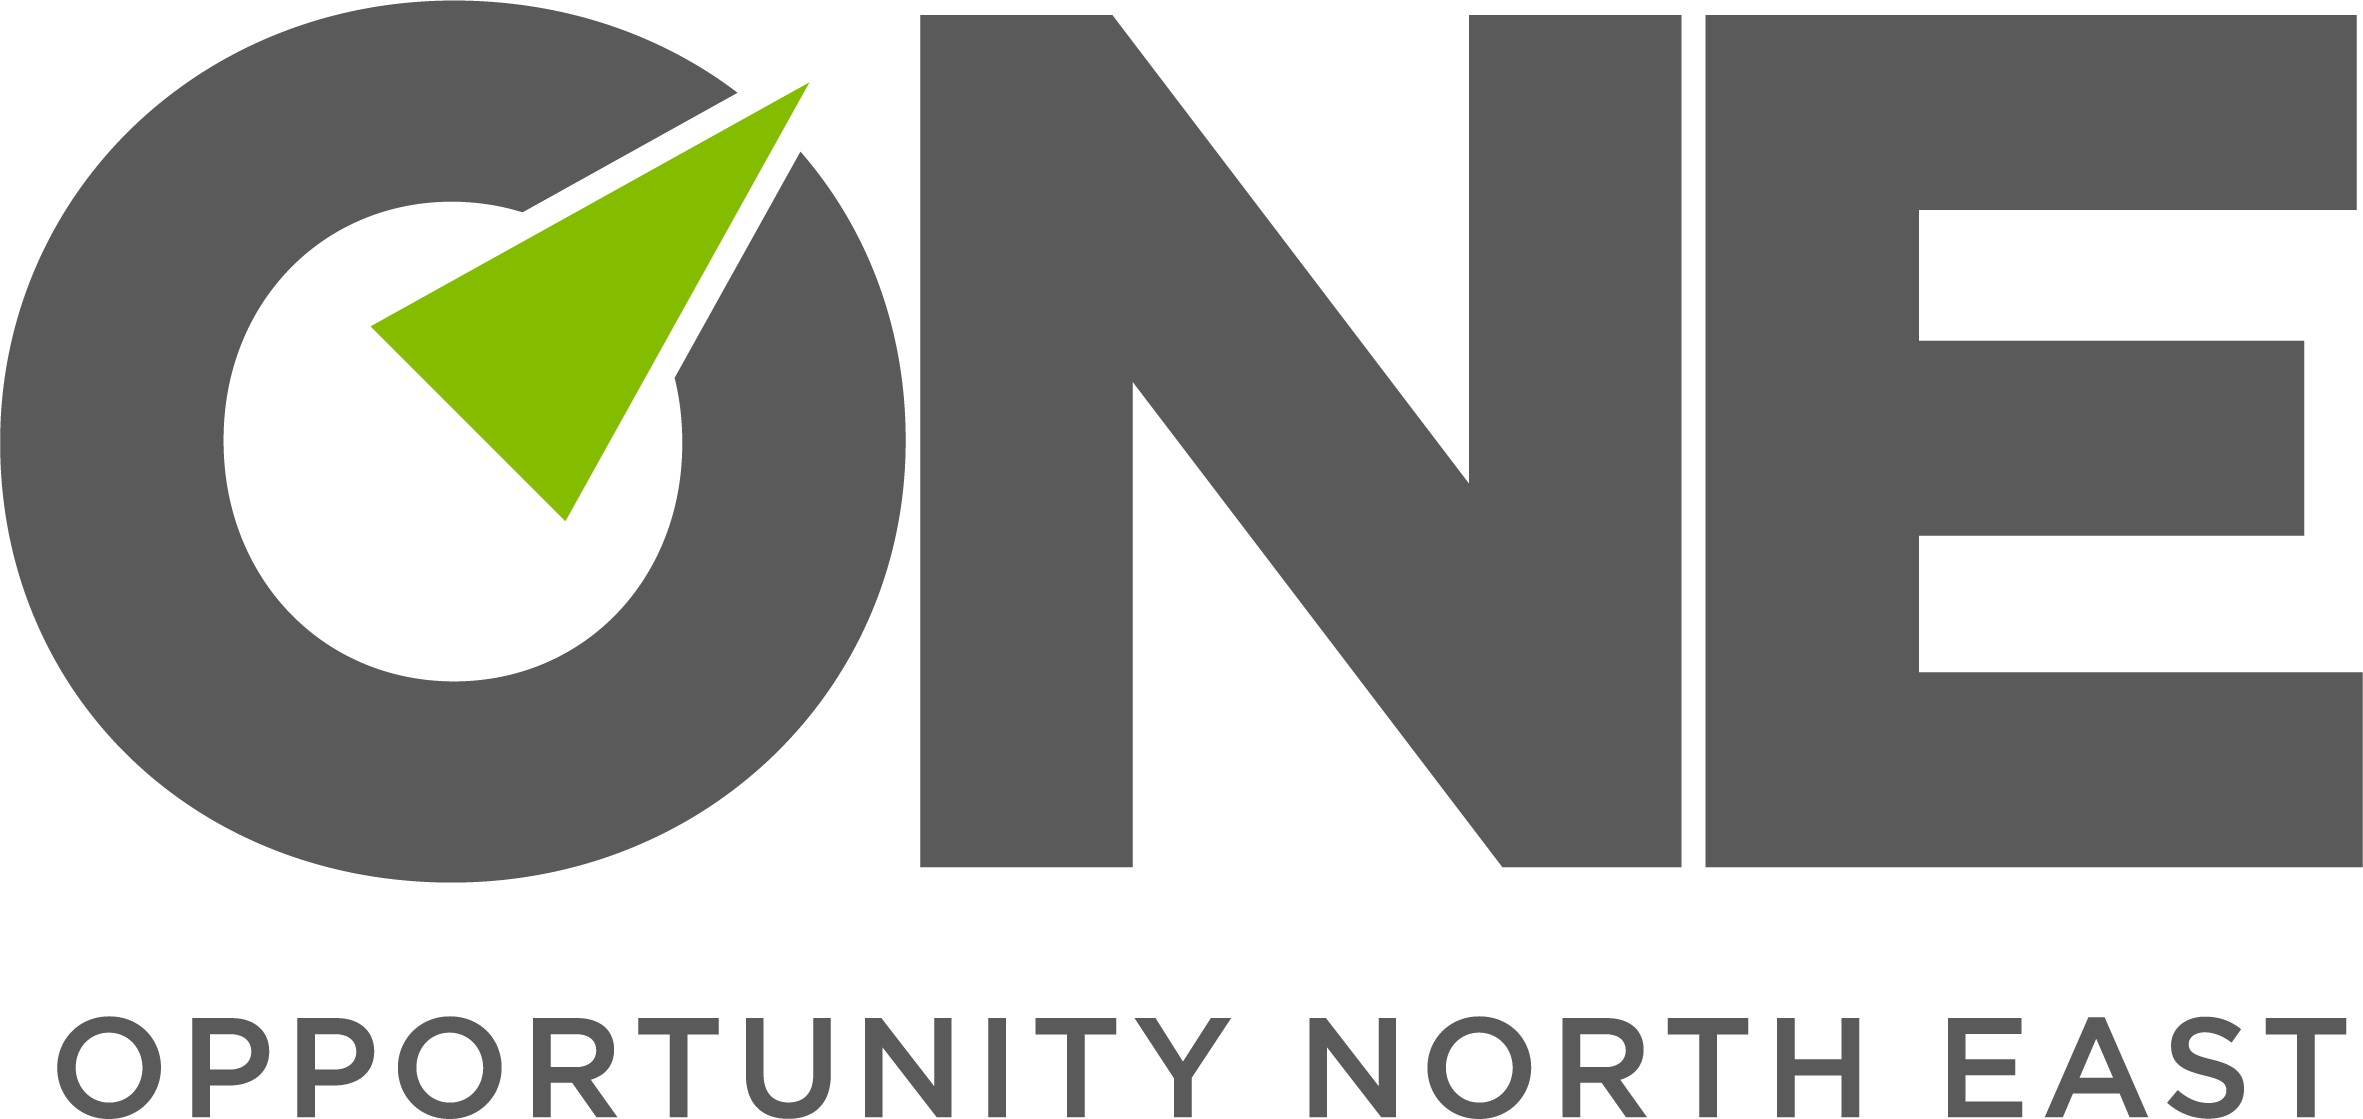 Opportunity North East logo